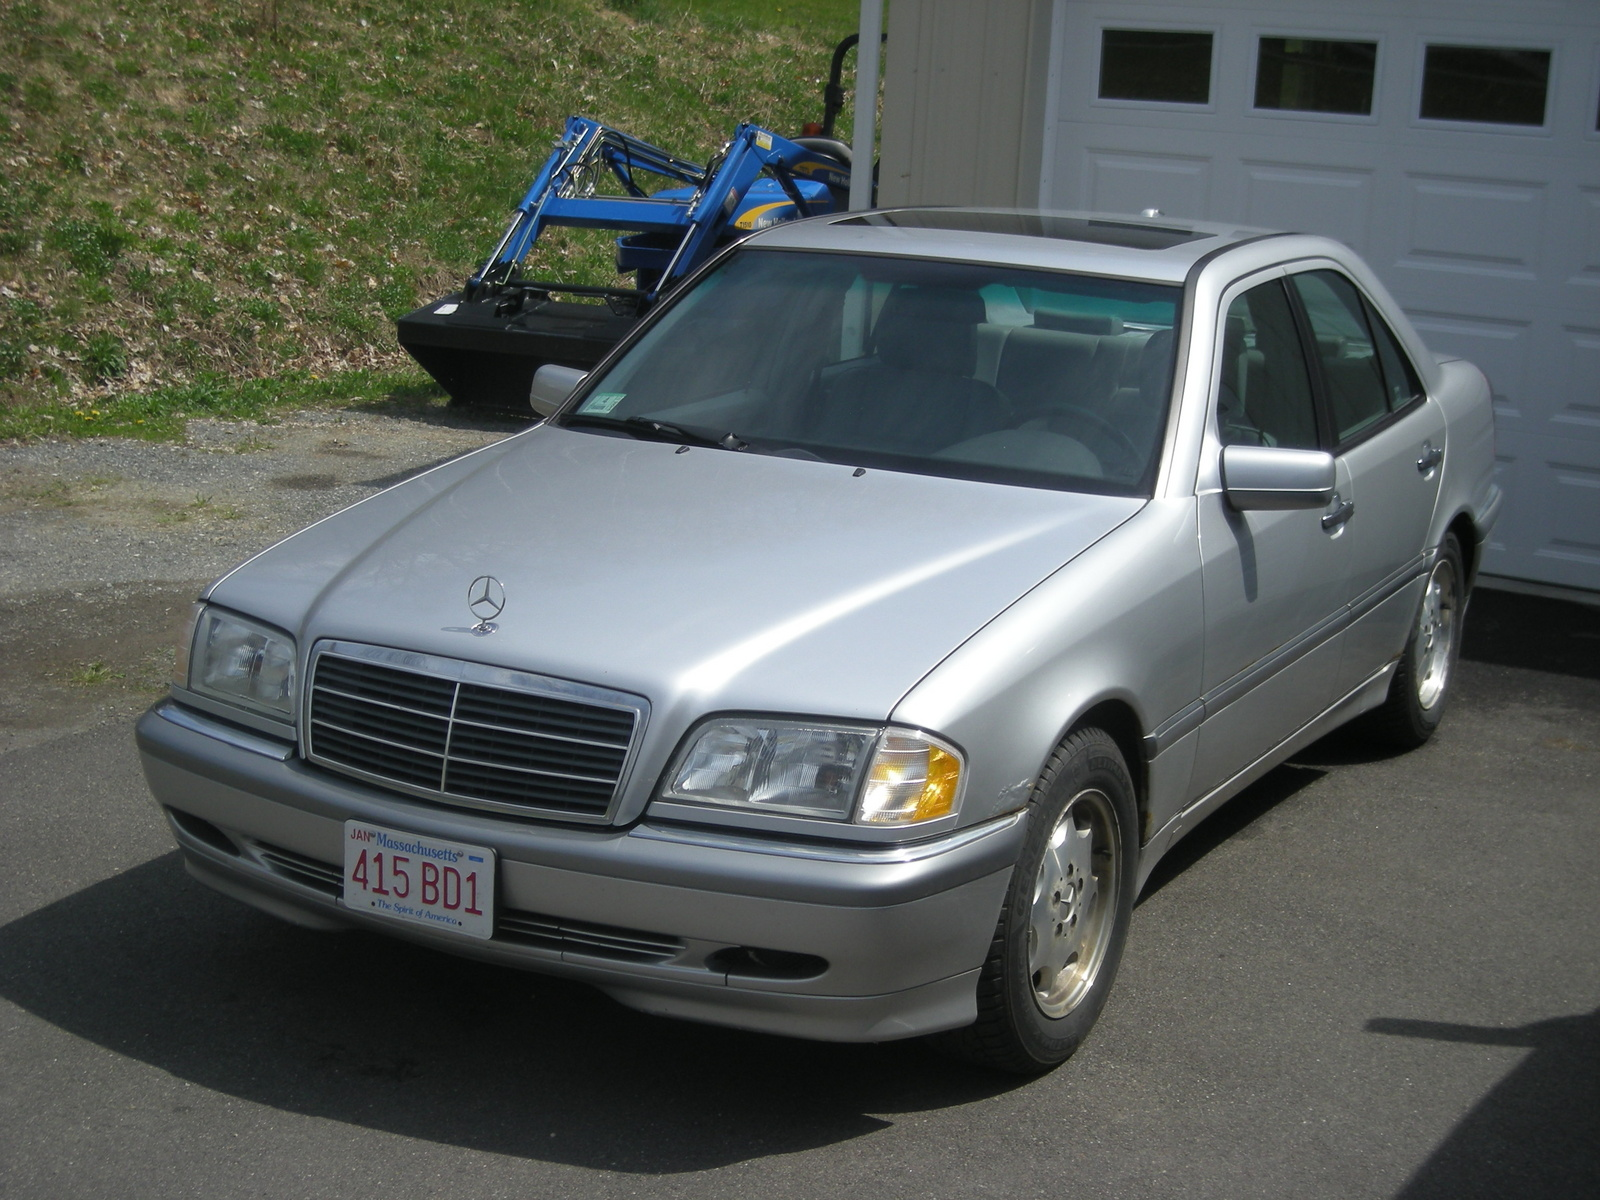 2000 mercedes benz c class pictures cargurus for Mercedes benz c350 supercharger